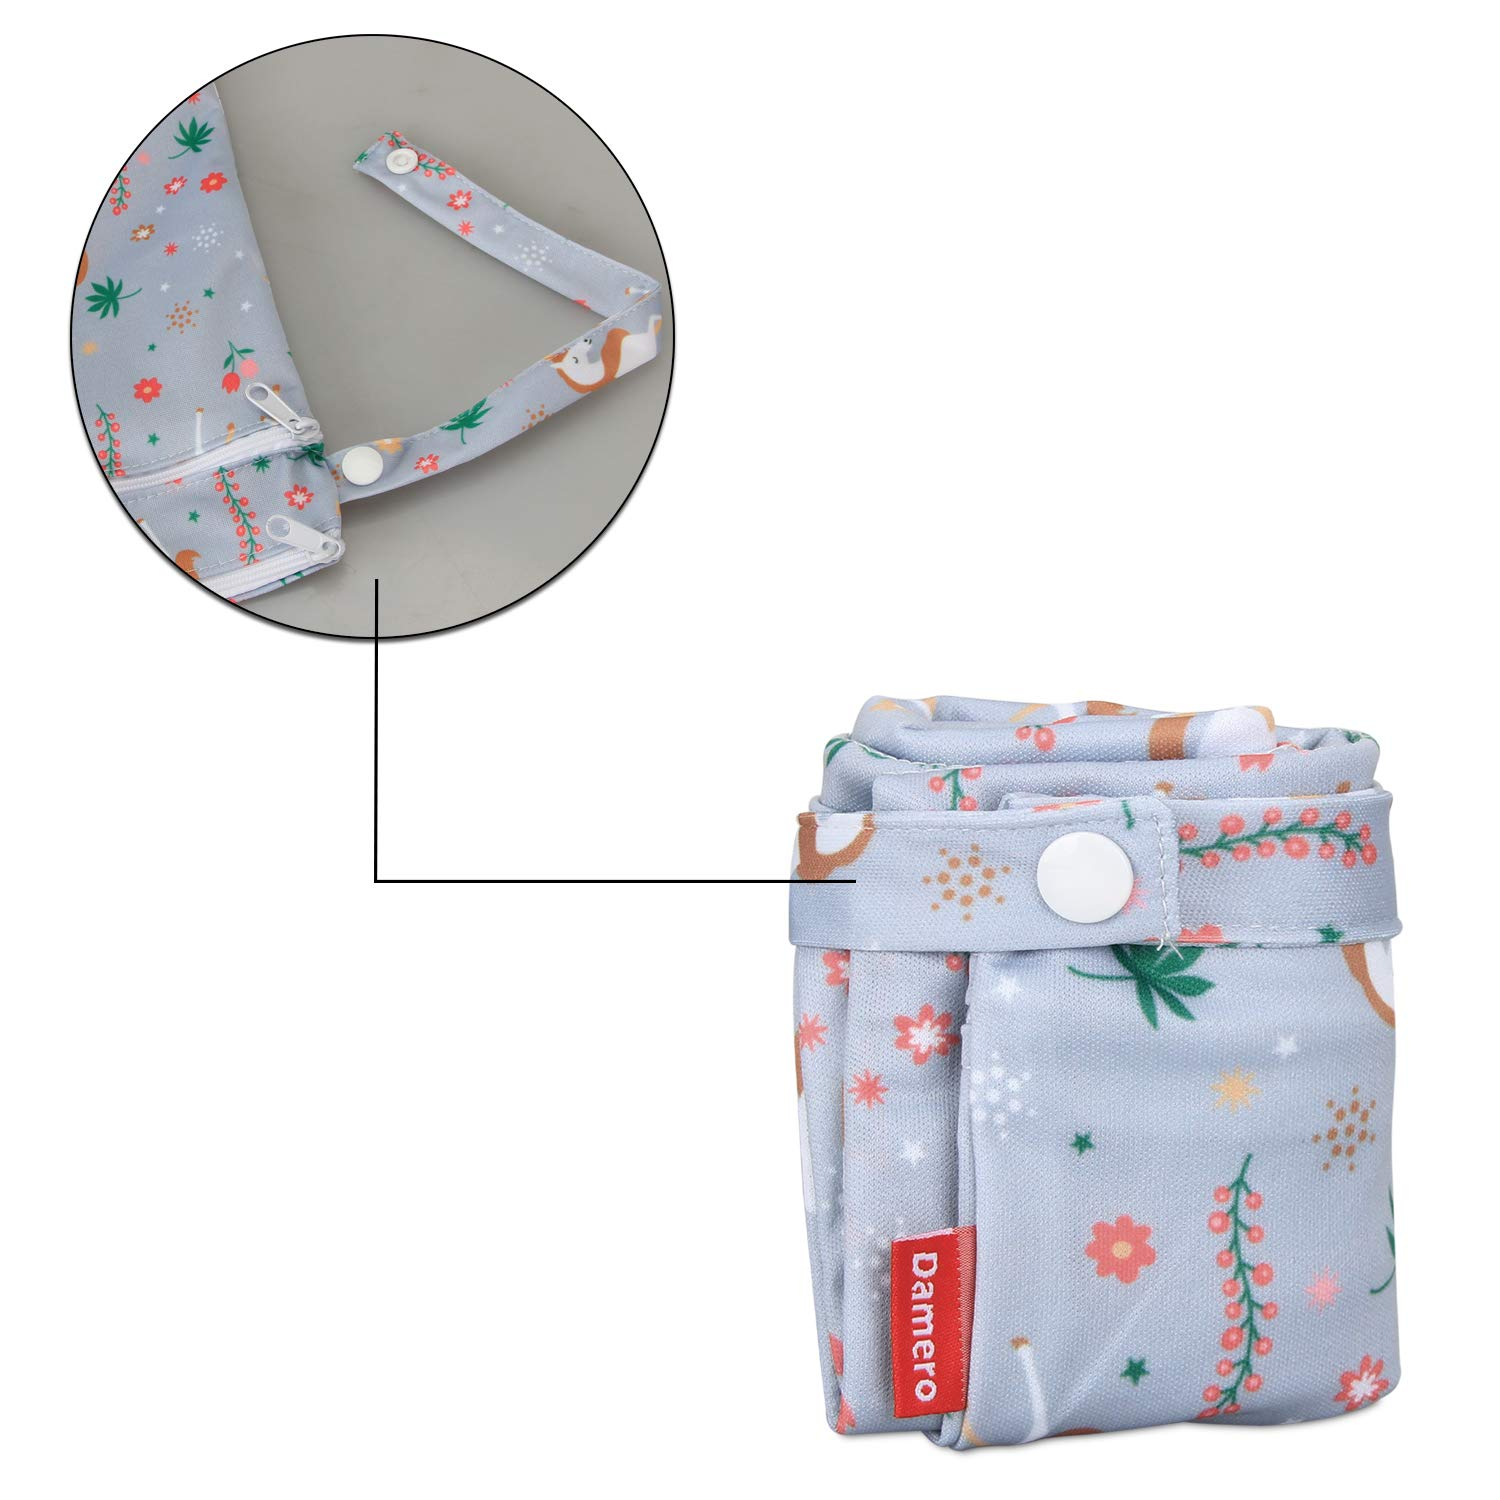 Damero Cloth Diaper Wet Dry Bags Clothes Small,Unicorn Pumping Parts Swimsuit and More Travel Wet and Dry Bag with Handle for Cloth Diaper Reusable and Water-resistant